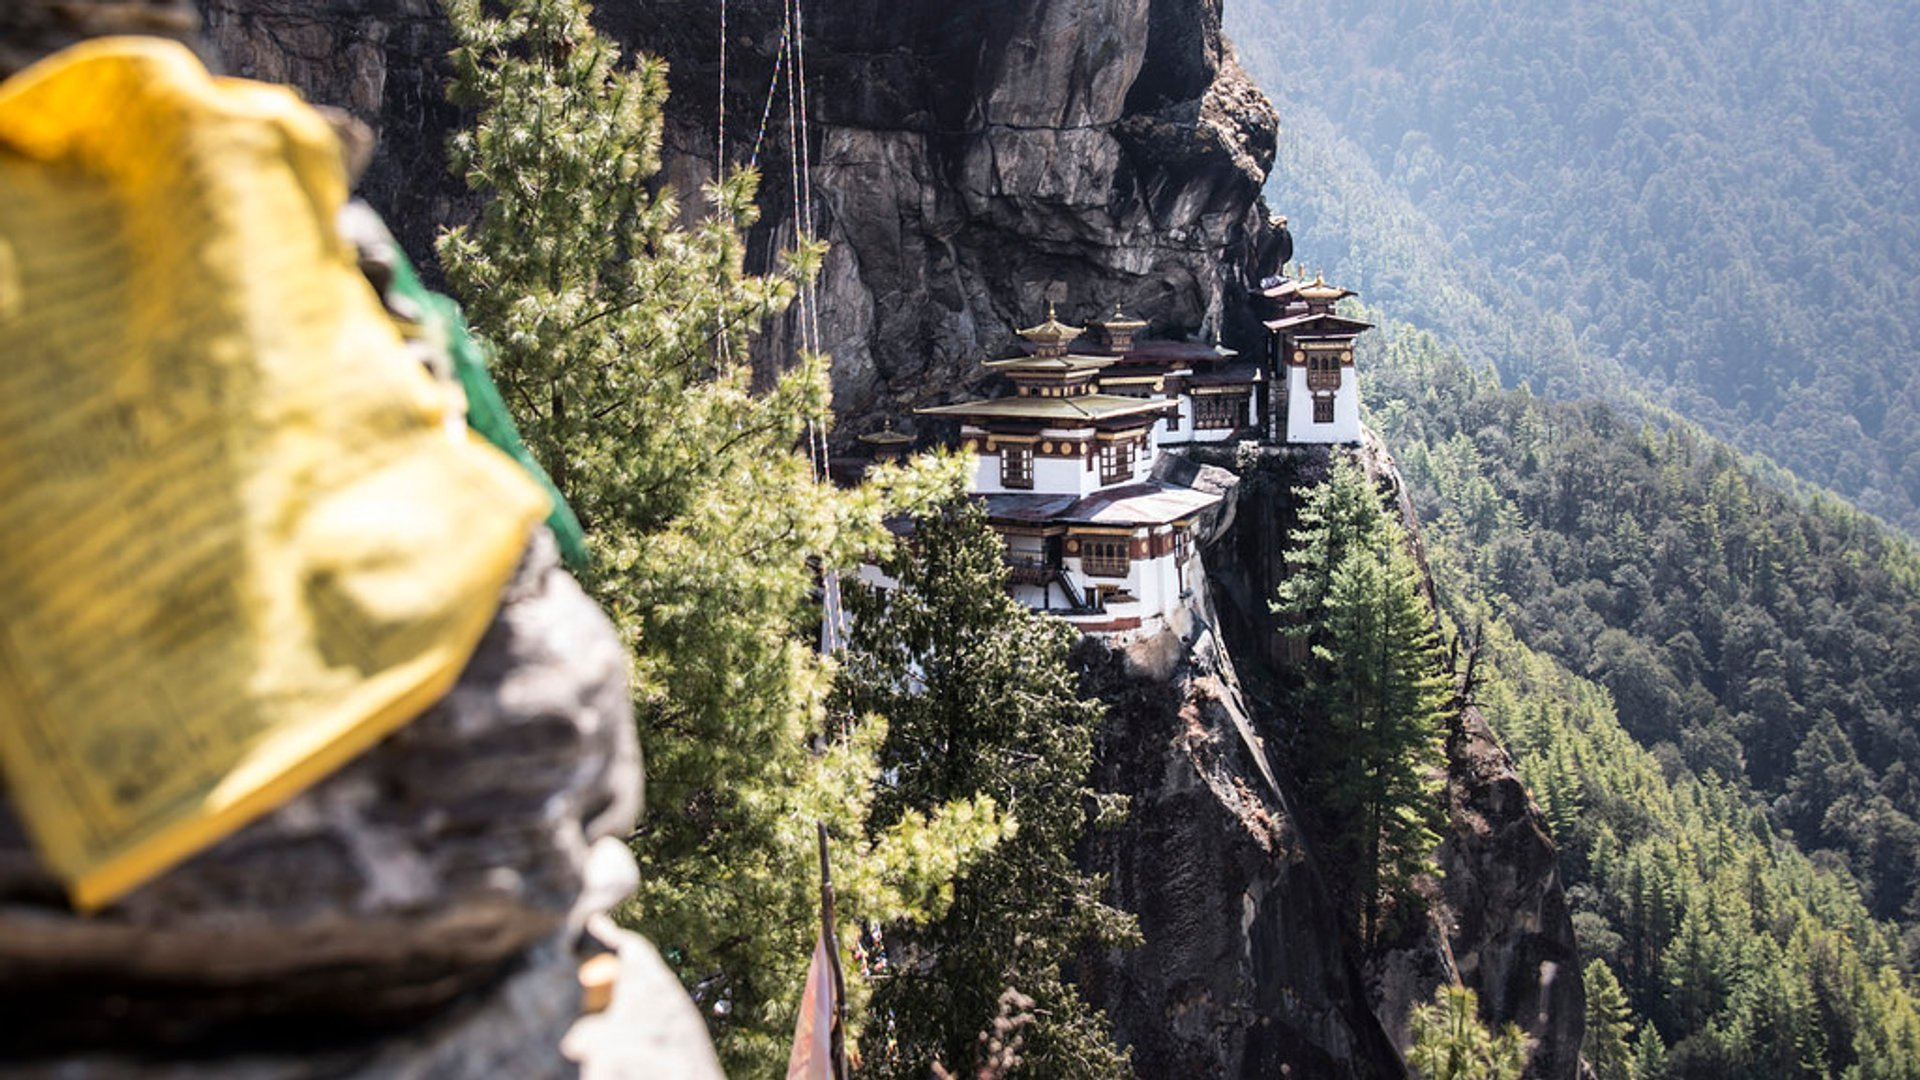 Best time to see Tiger's Nest (Paro Taktsang) 2020